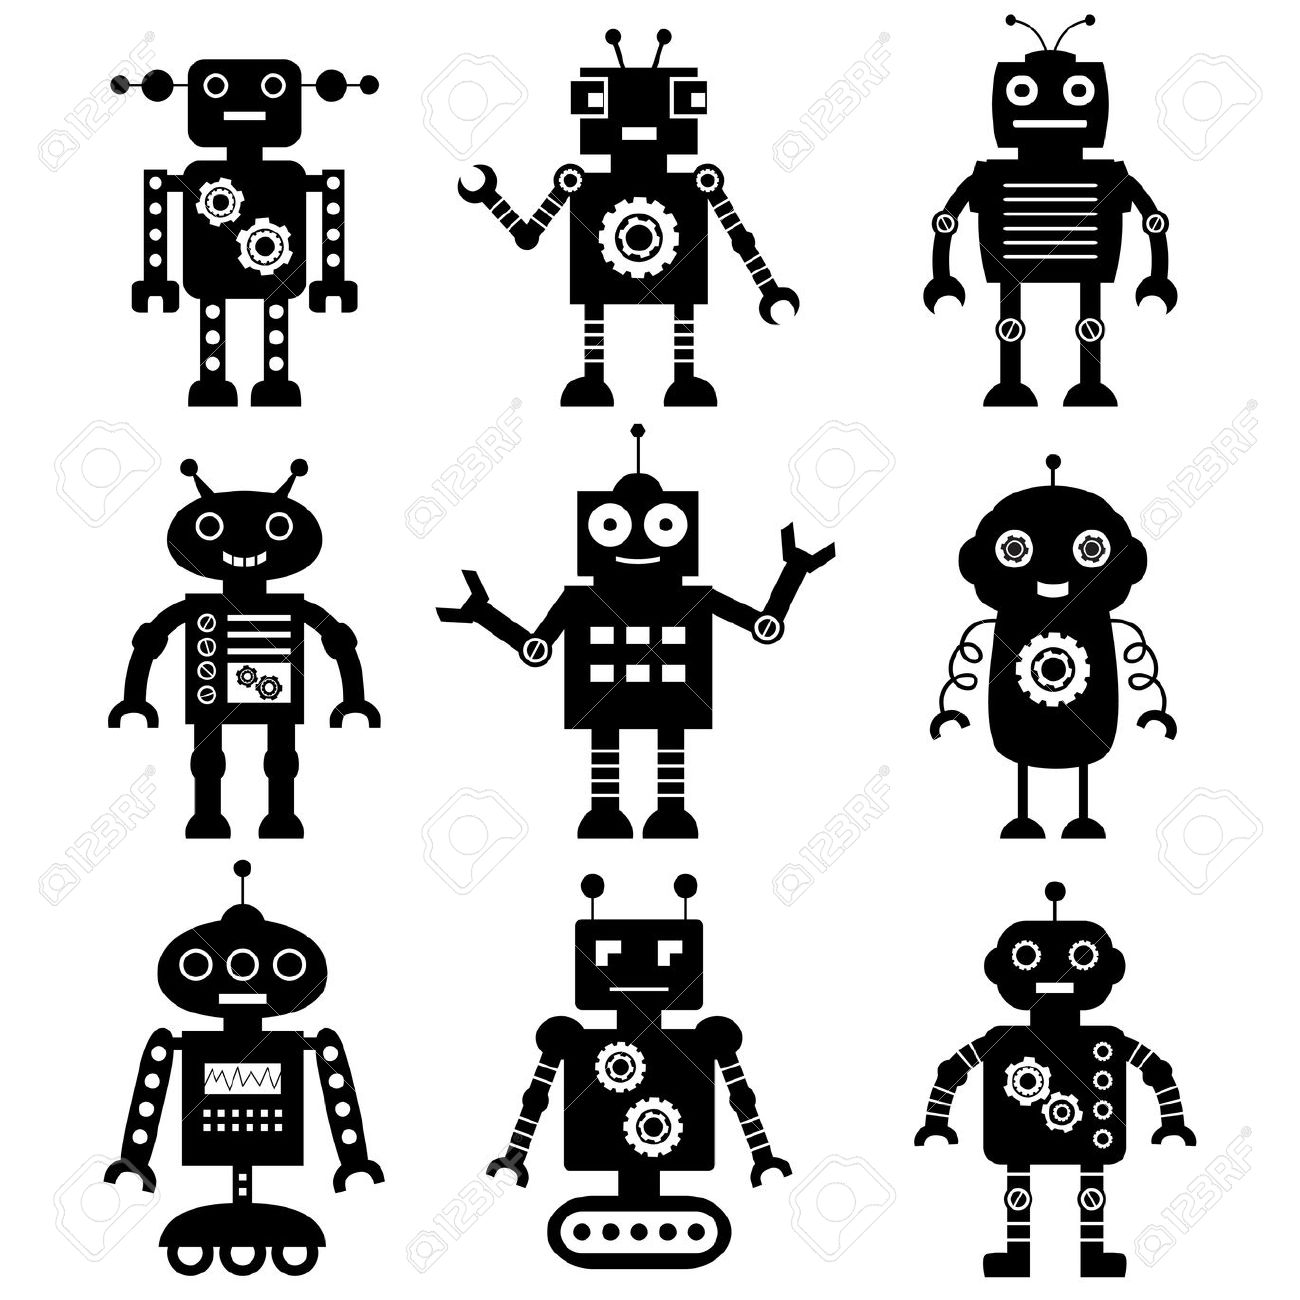 16,802 White Robot Stock Vector Illustration And Royalty Free.